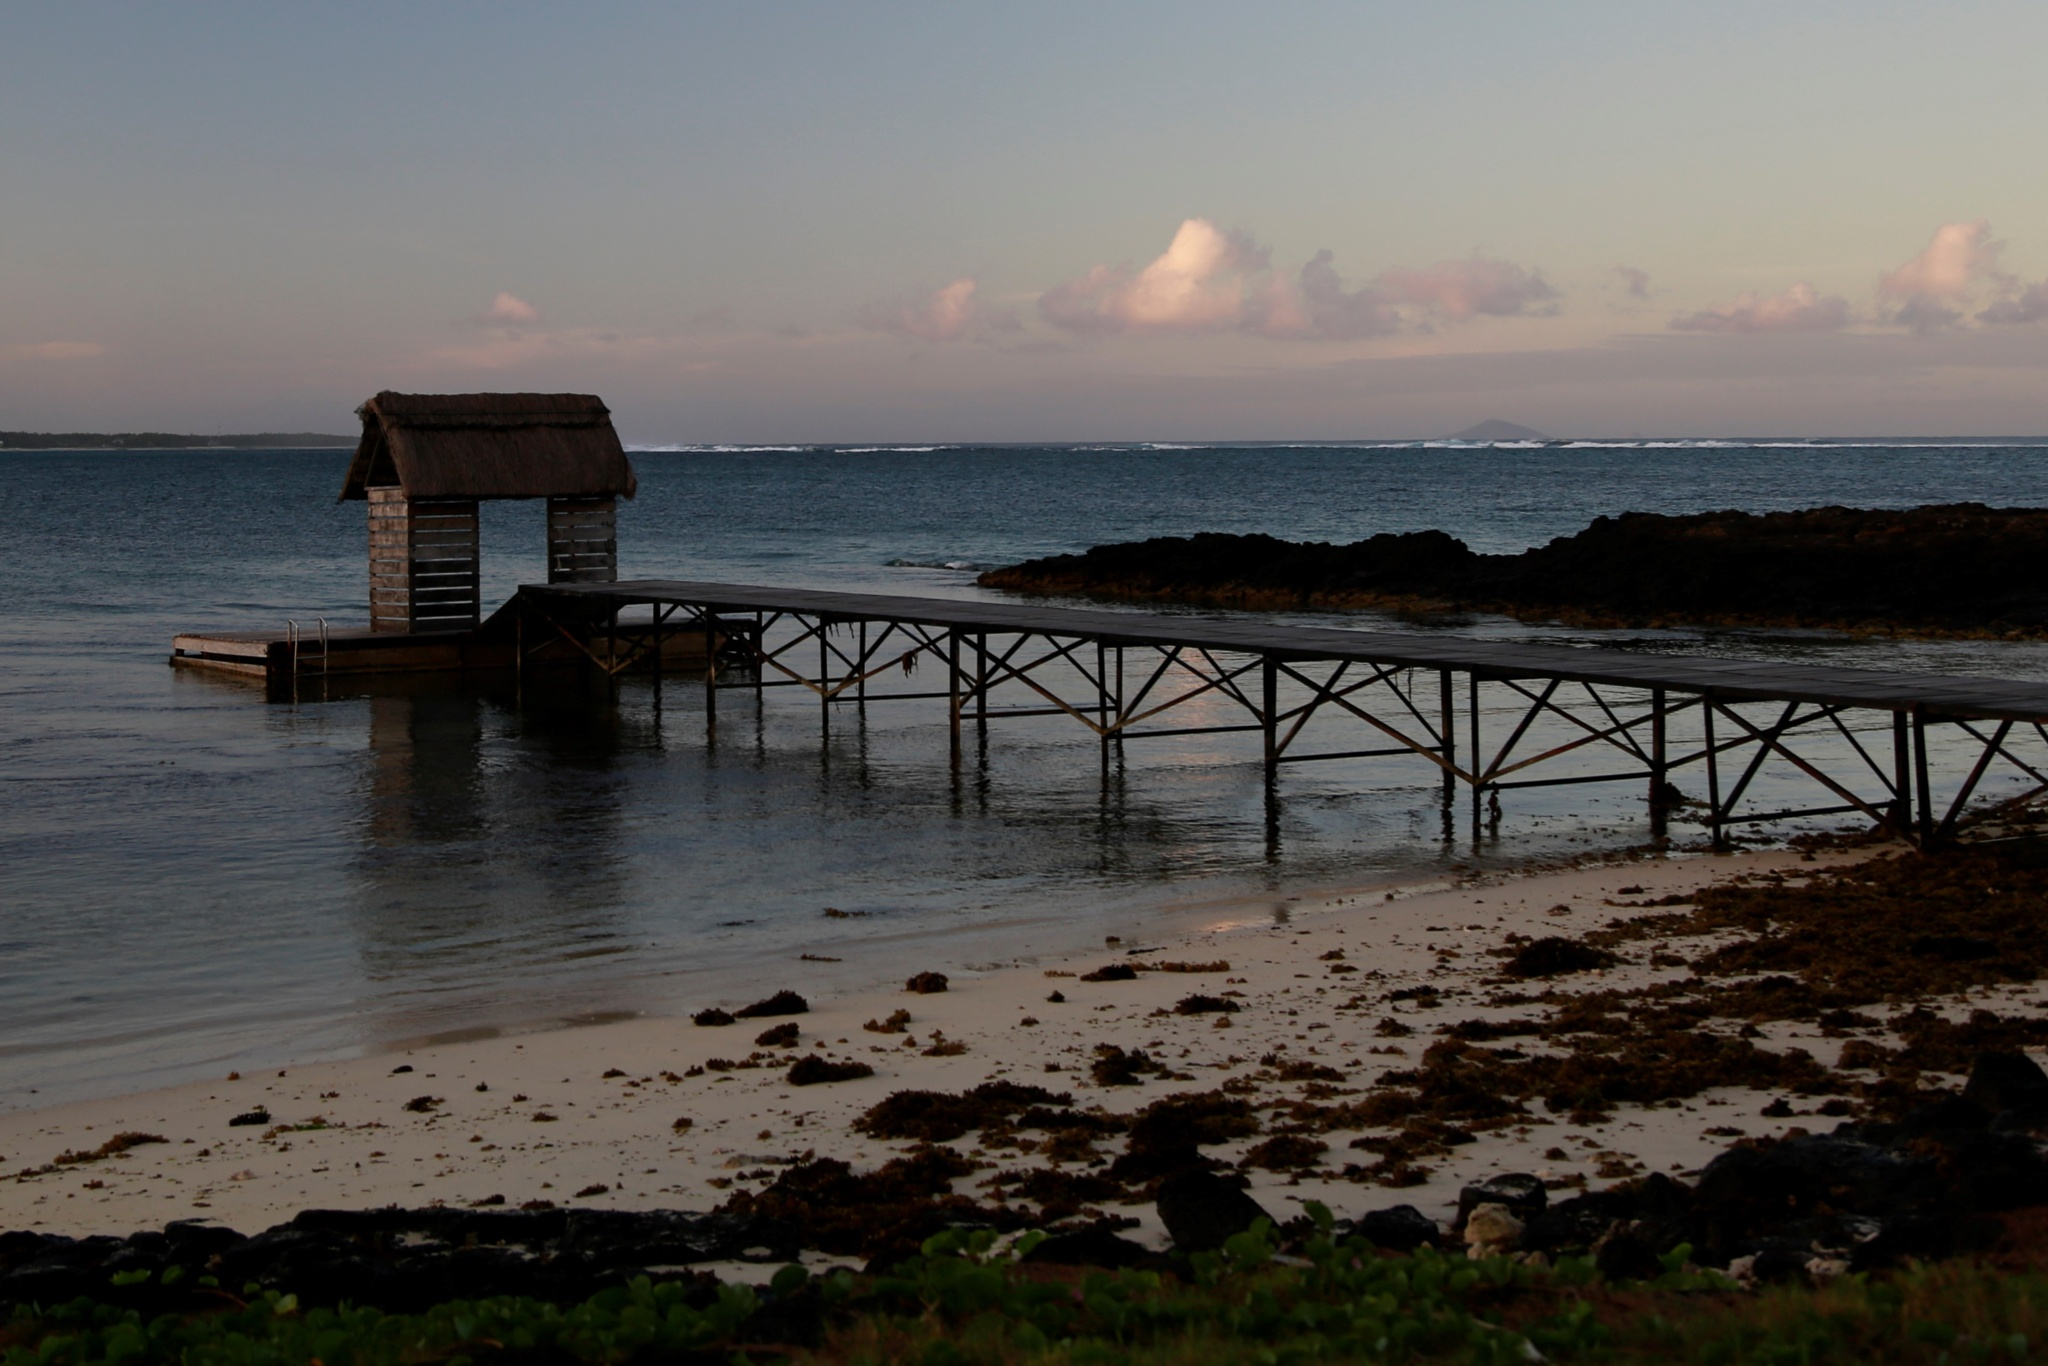 Sunrise over the boathouse by Debbie Engelbrecht